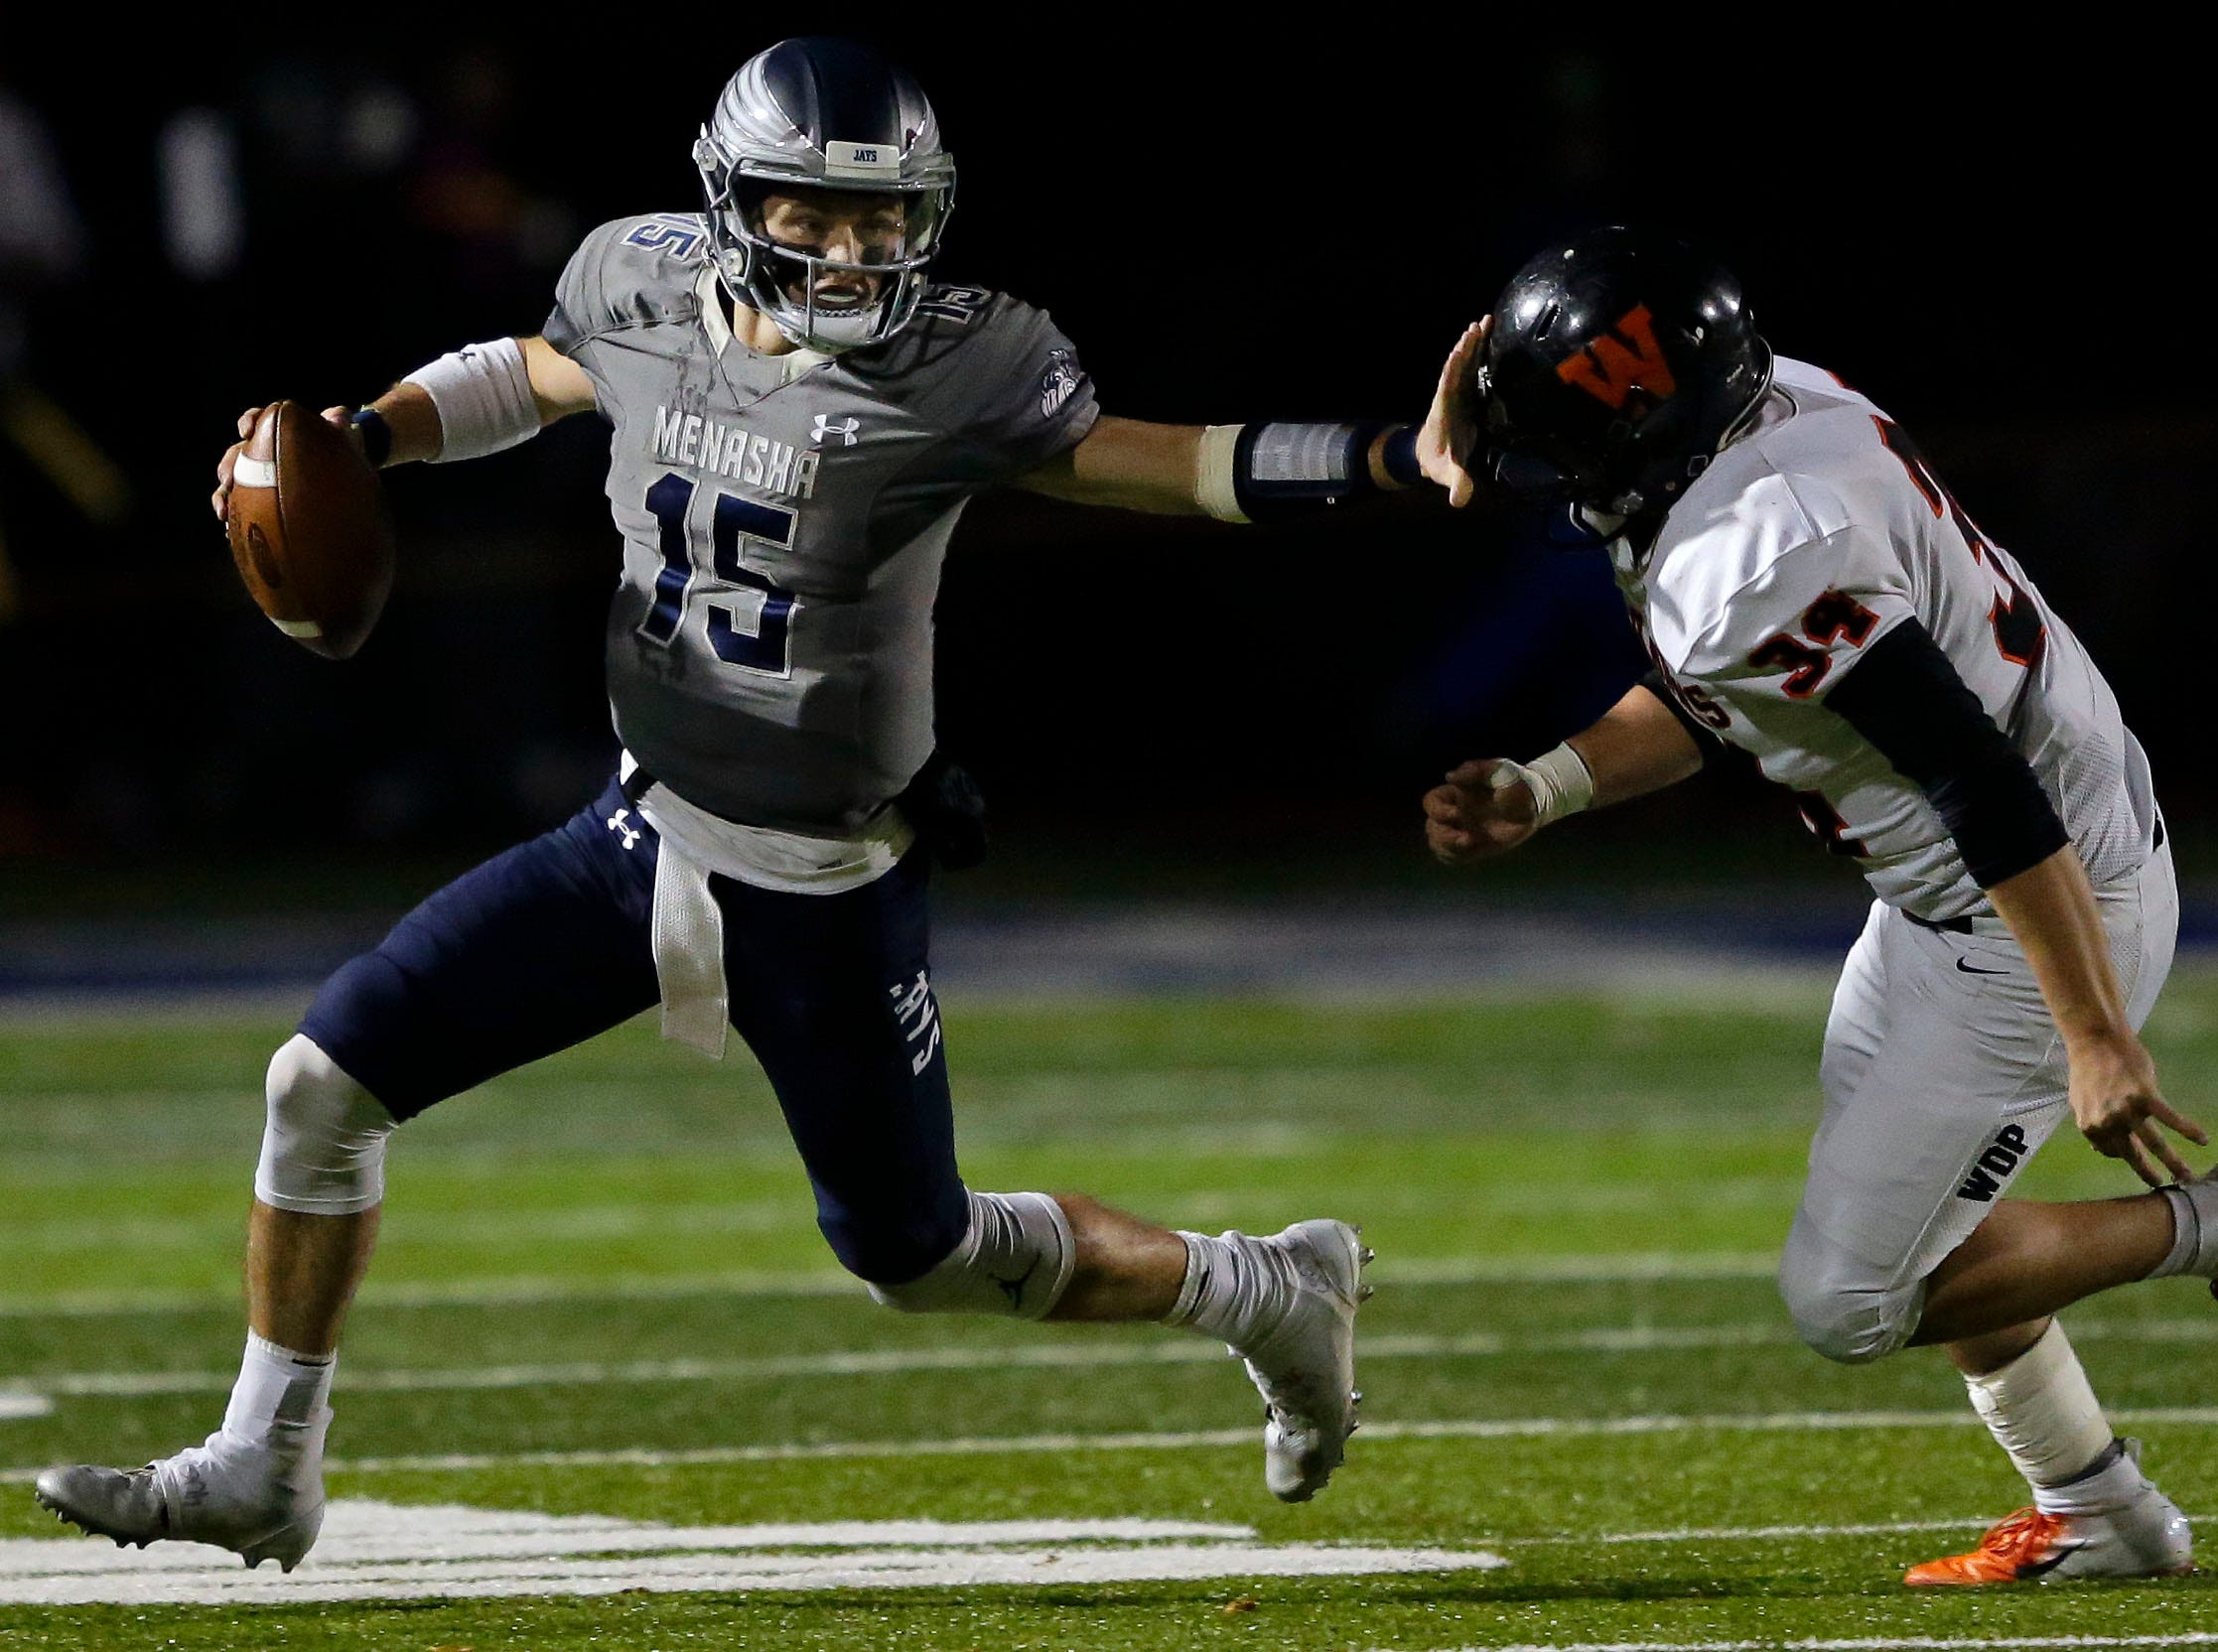 Quarterback Cole Popp of Menasha looks downfield while keeping away from Braydon Skenadore of West De Pere in a Bay Conference football game Friday, September 28, 2018, at Calder Stadium in Menasha, Wis.Ron Page/USA TODAY NETWORK-Wisconsin